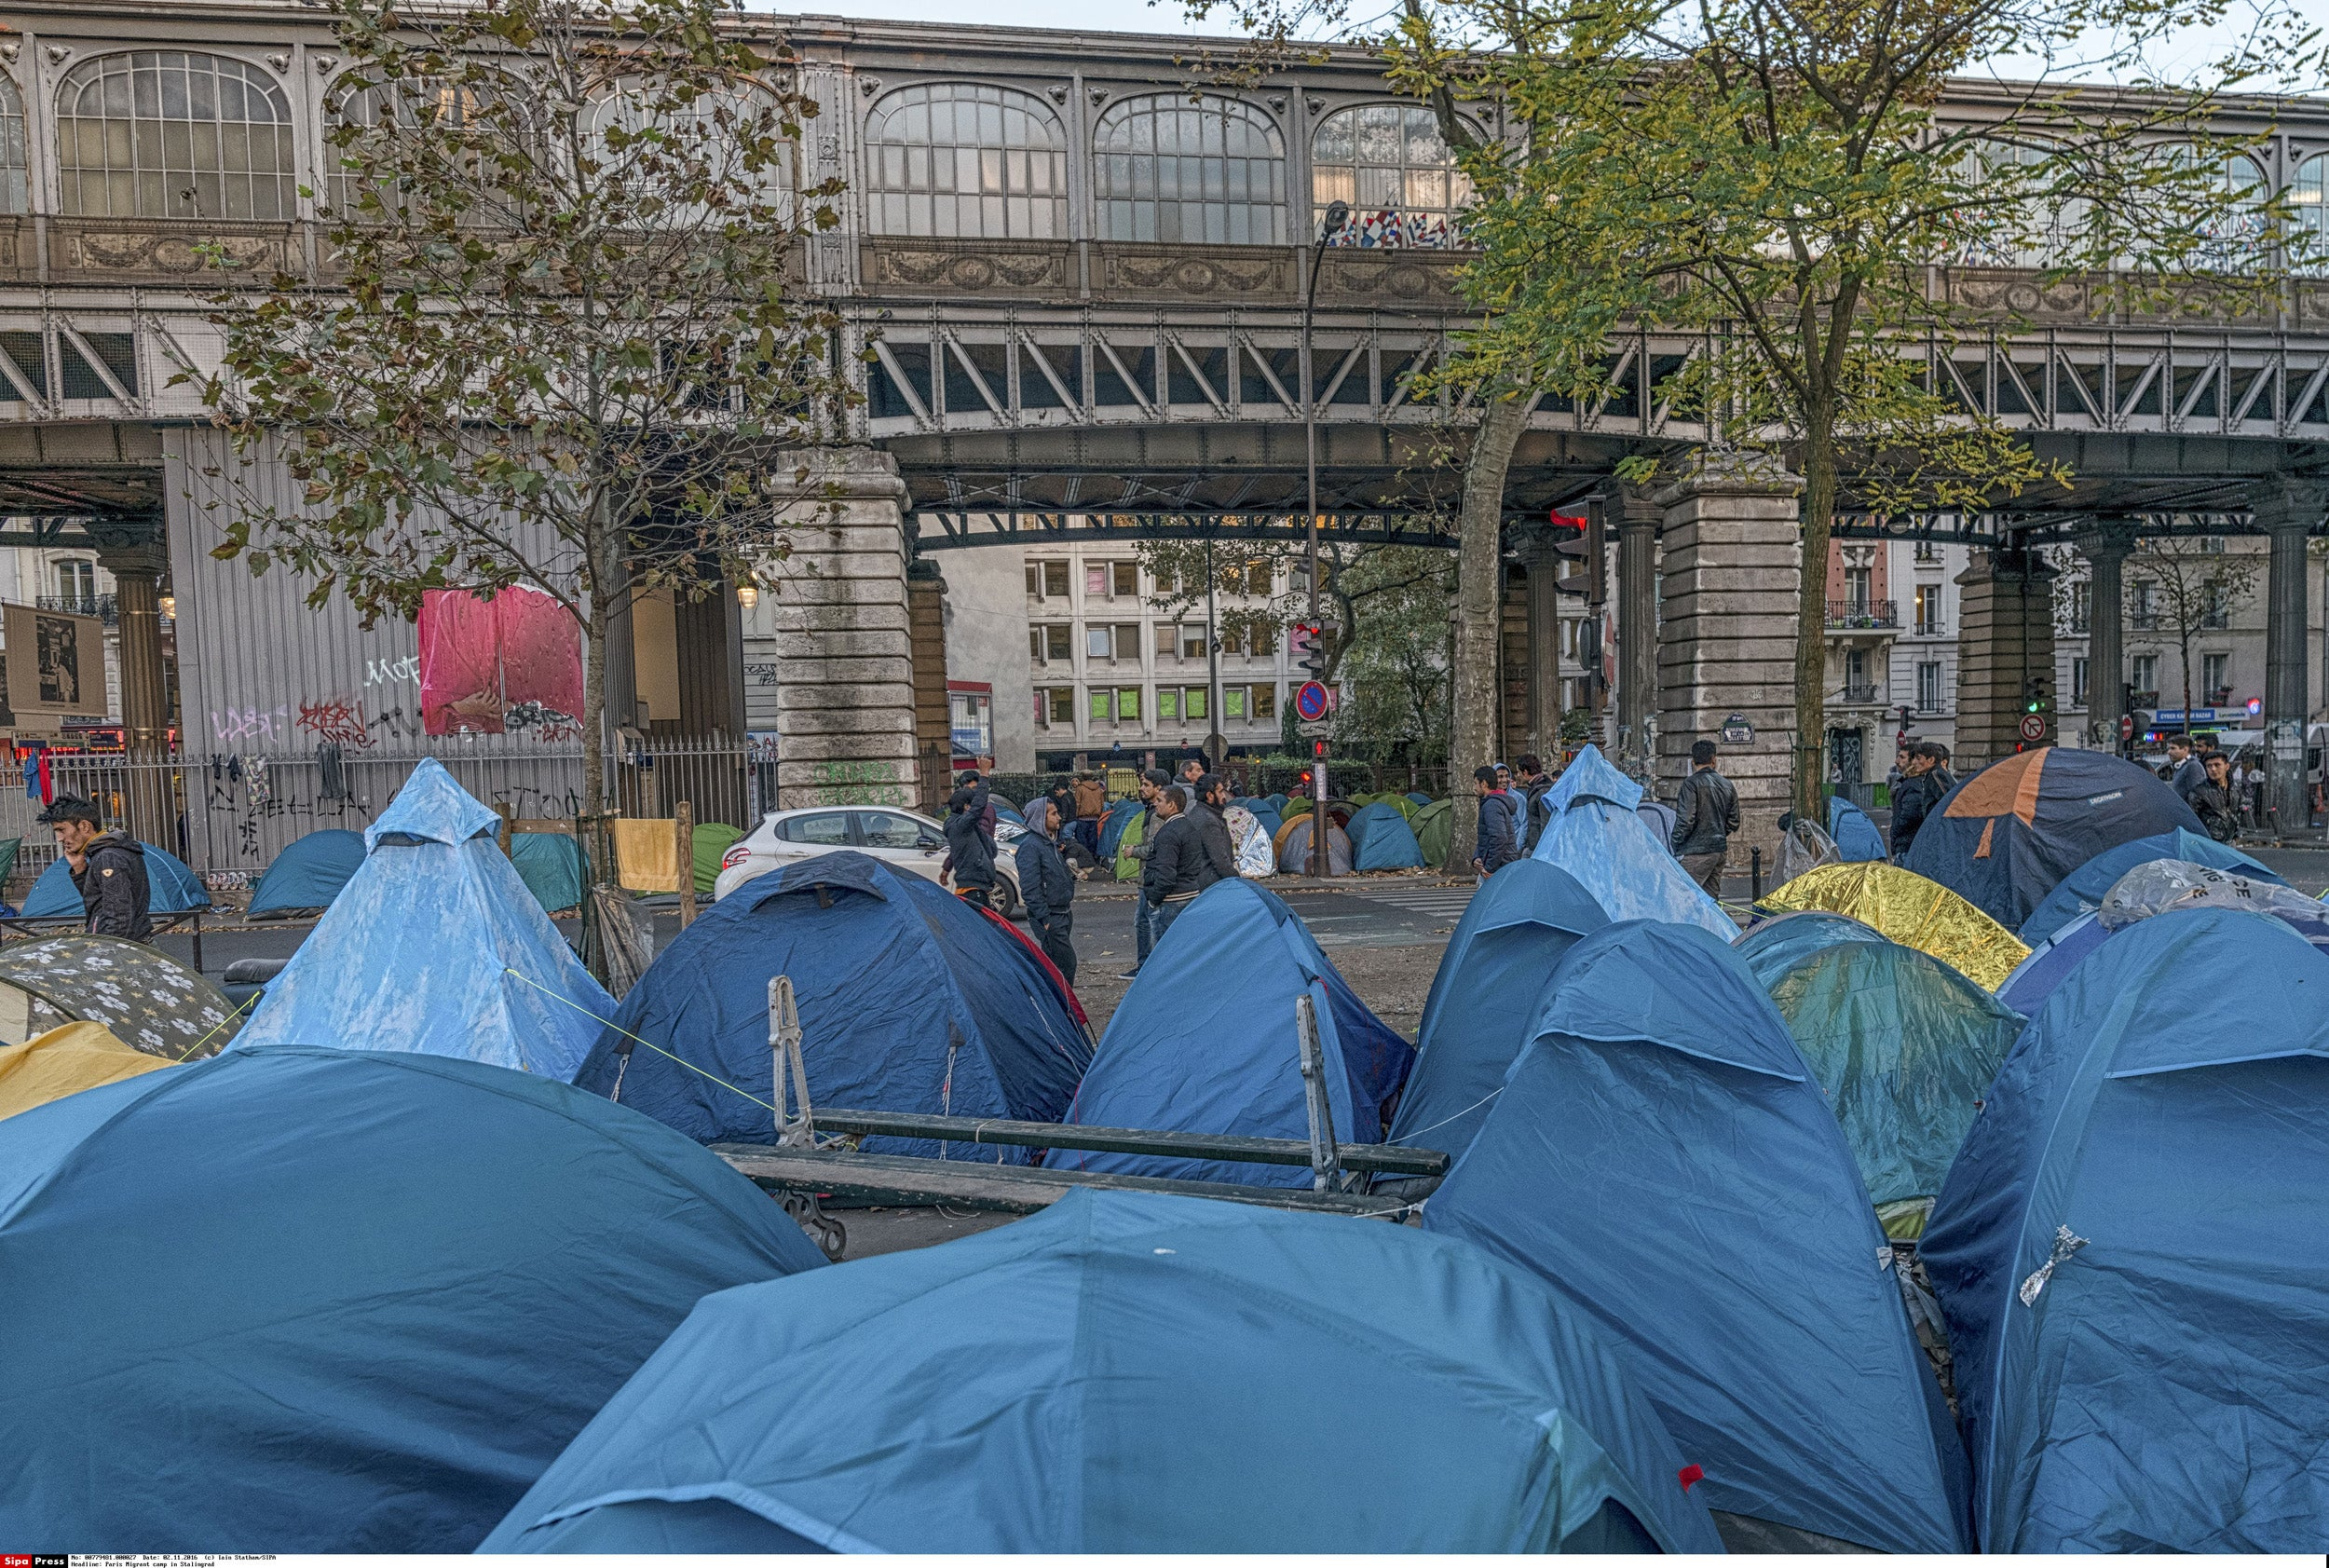 A team including two Harvard students has won first prize at Paris #Talents2024 for BubbleBox, a mobile hygiene unit that can be deployed to refugee camps such as this Afghan tent city in Stalingrad, Paris.